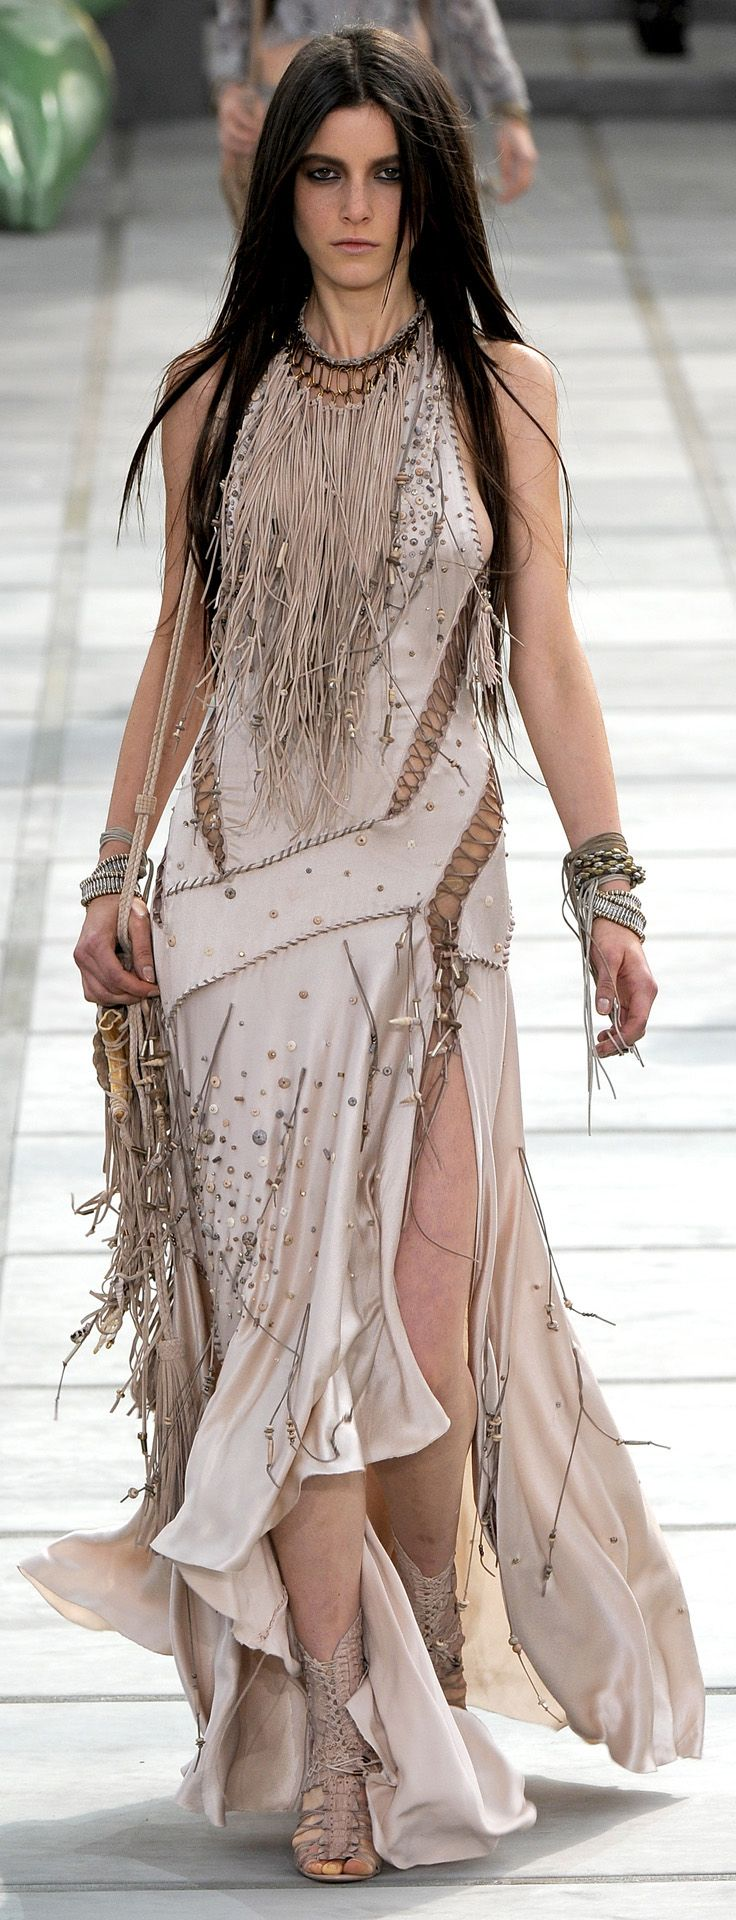 ✪ Native American Influence in Cavalli's SS 2011 collection ✪…